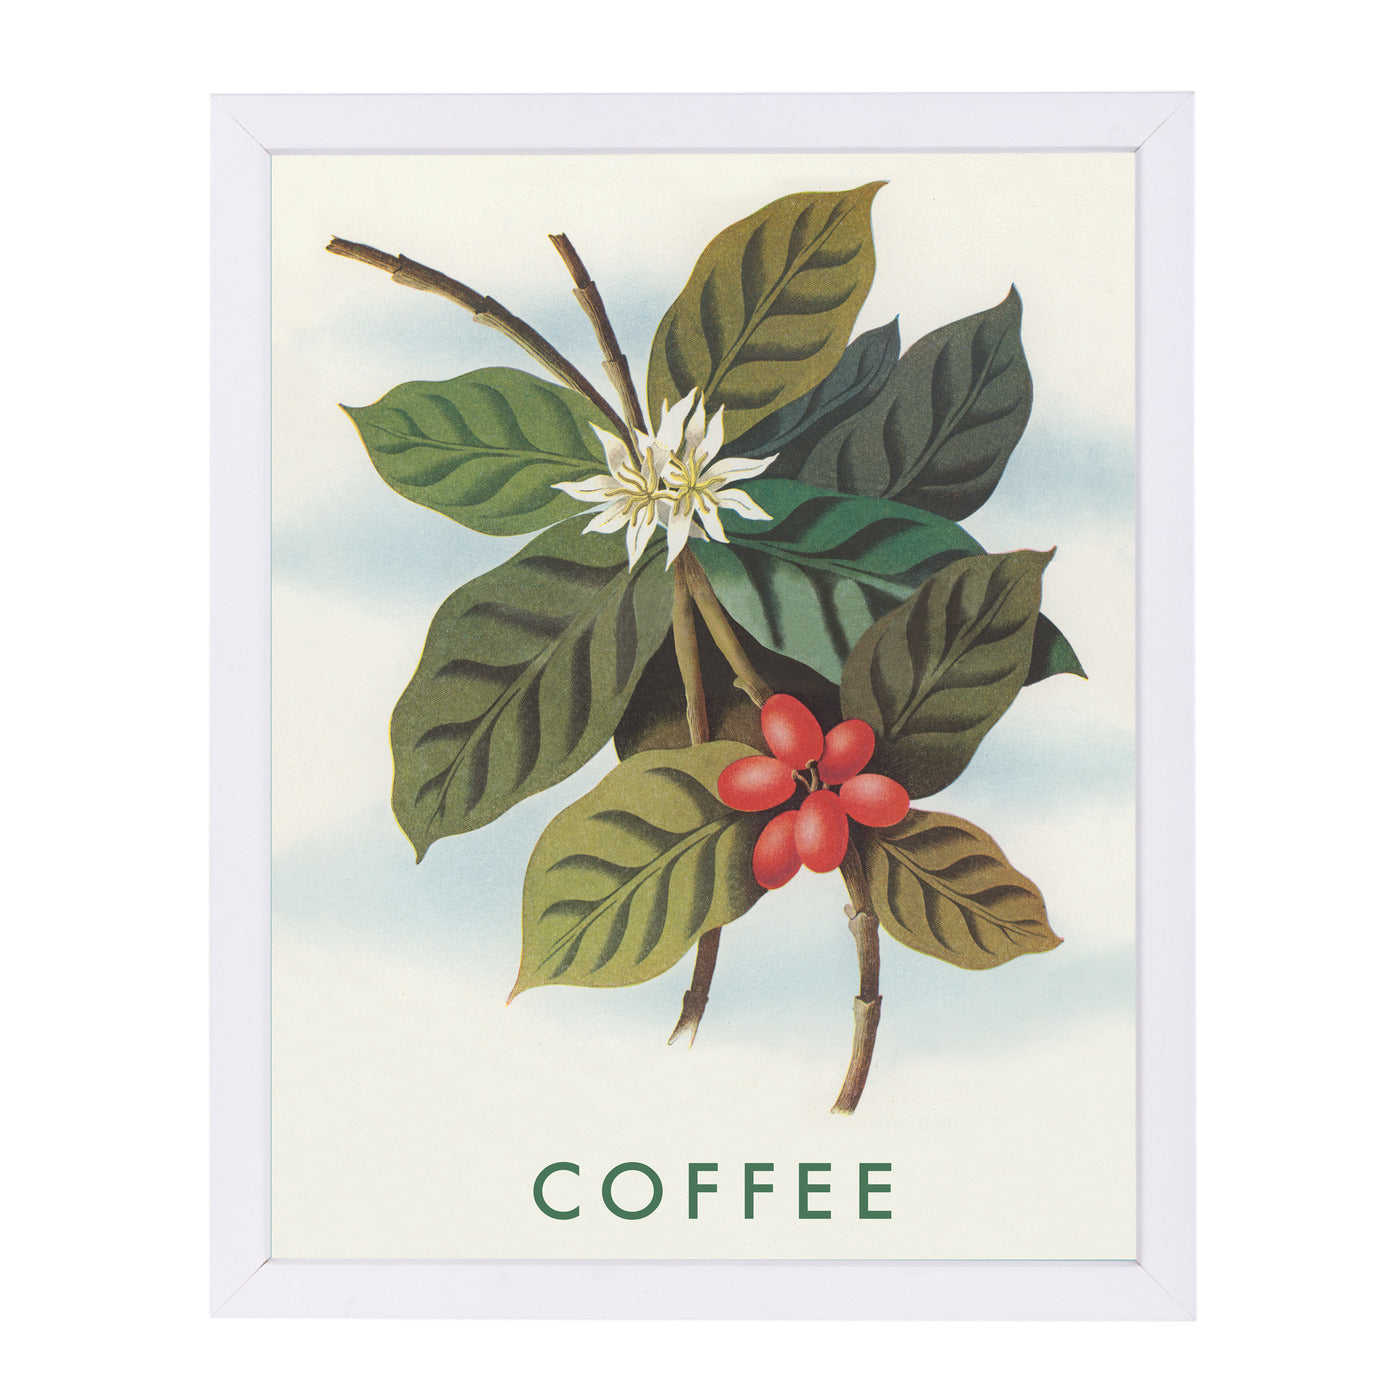 Coffee Plant by Found Image Press Framed Print - Wall Art - Americanflat